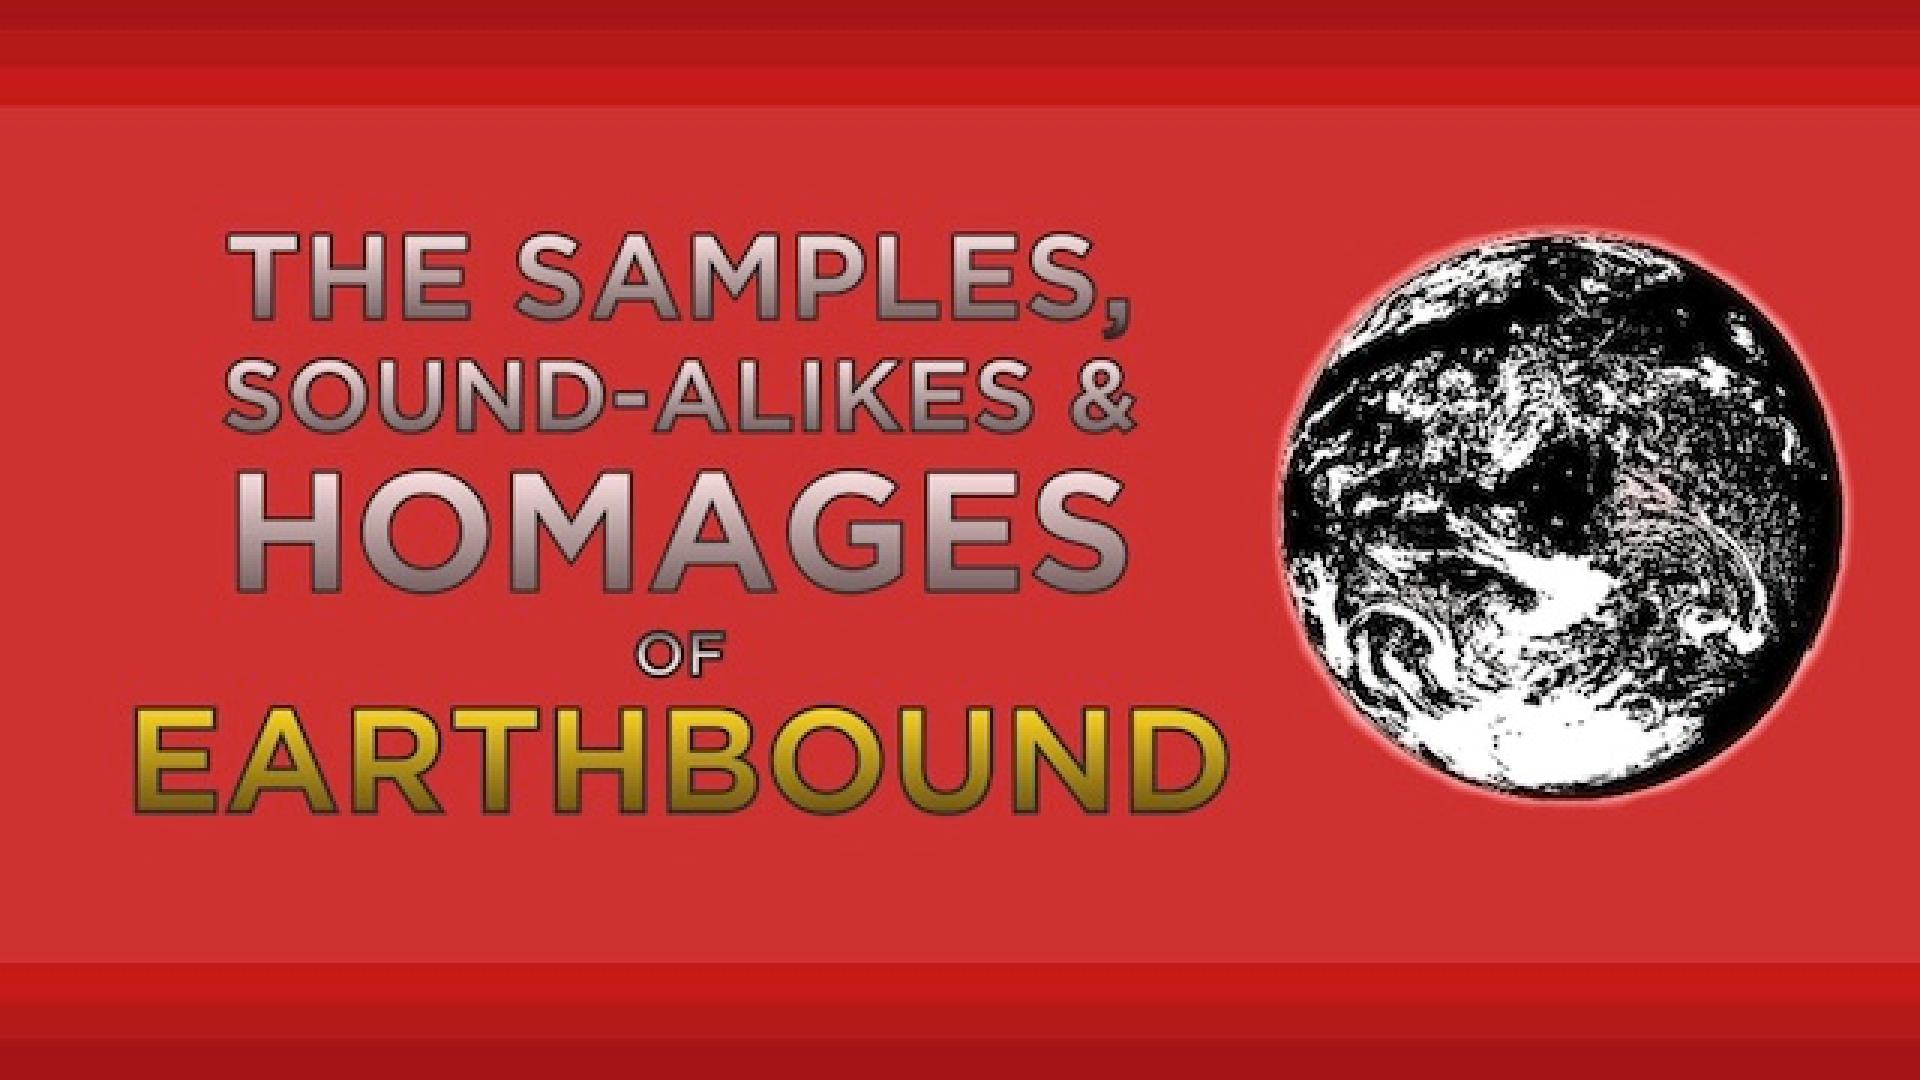 The Many Samples And Sound-Alikes Of Earthbound